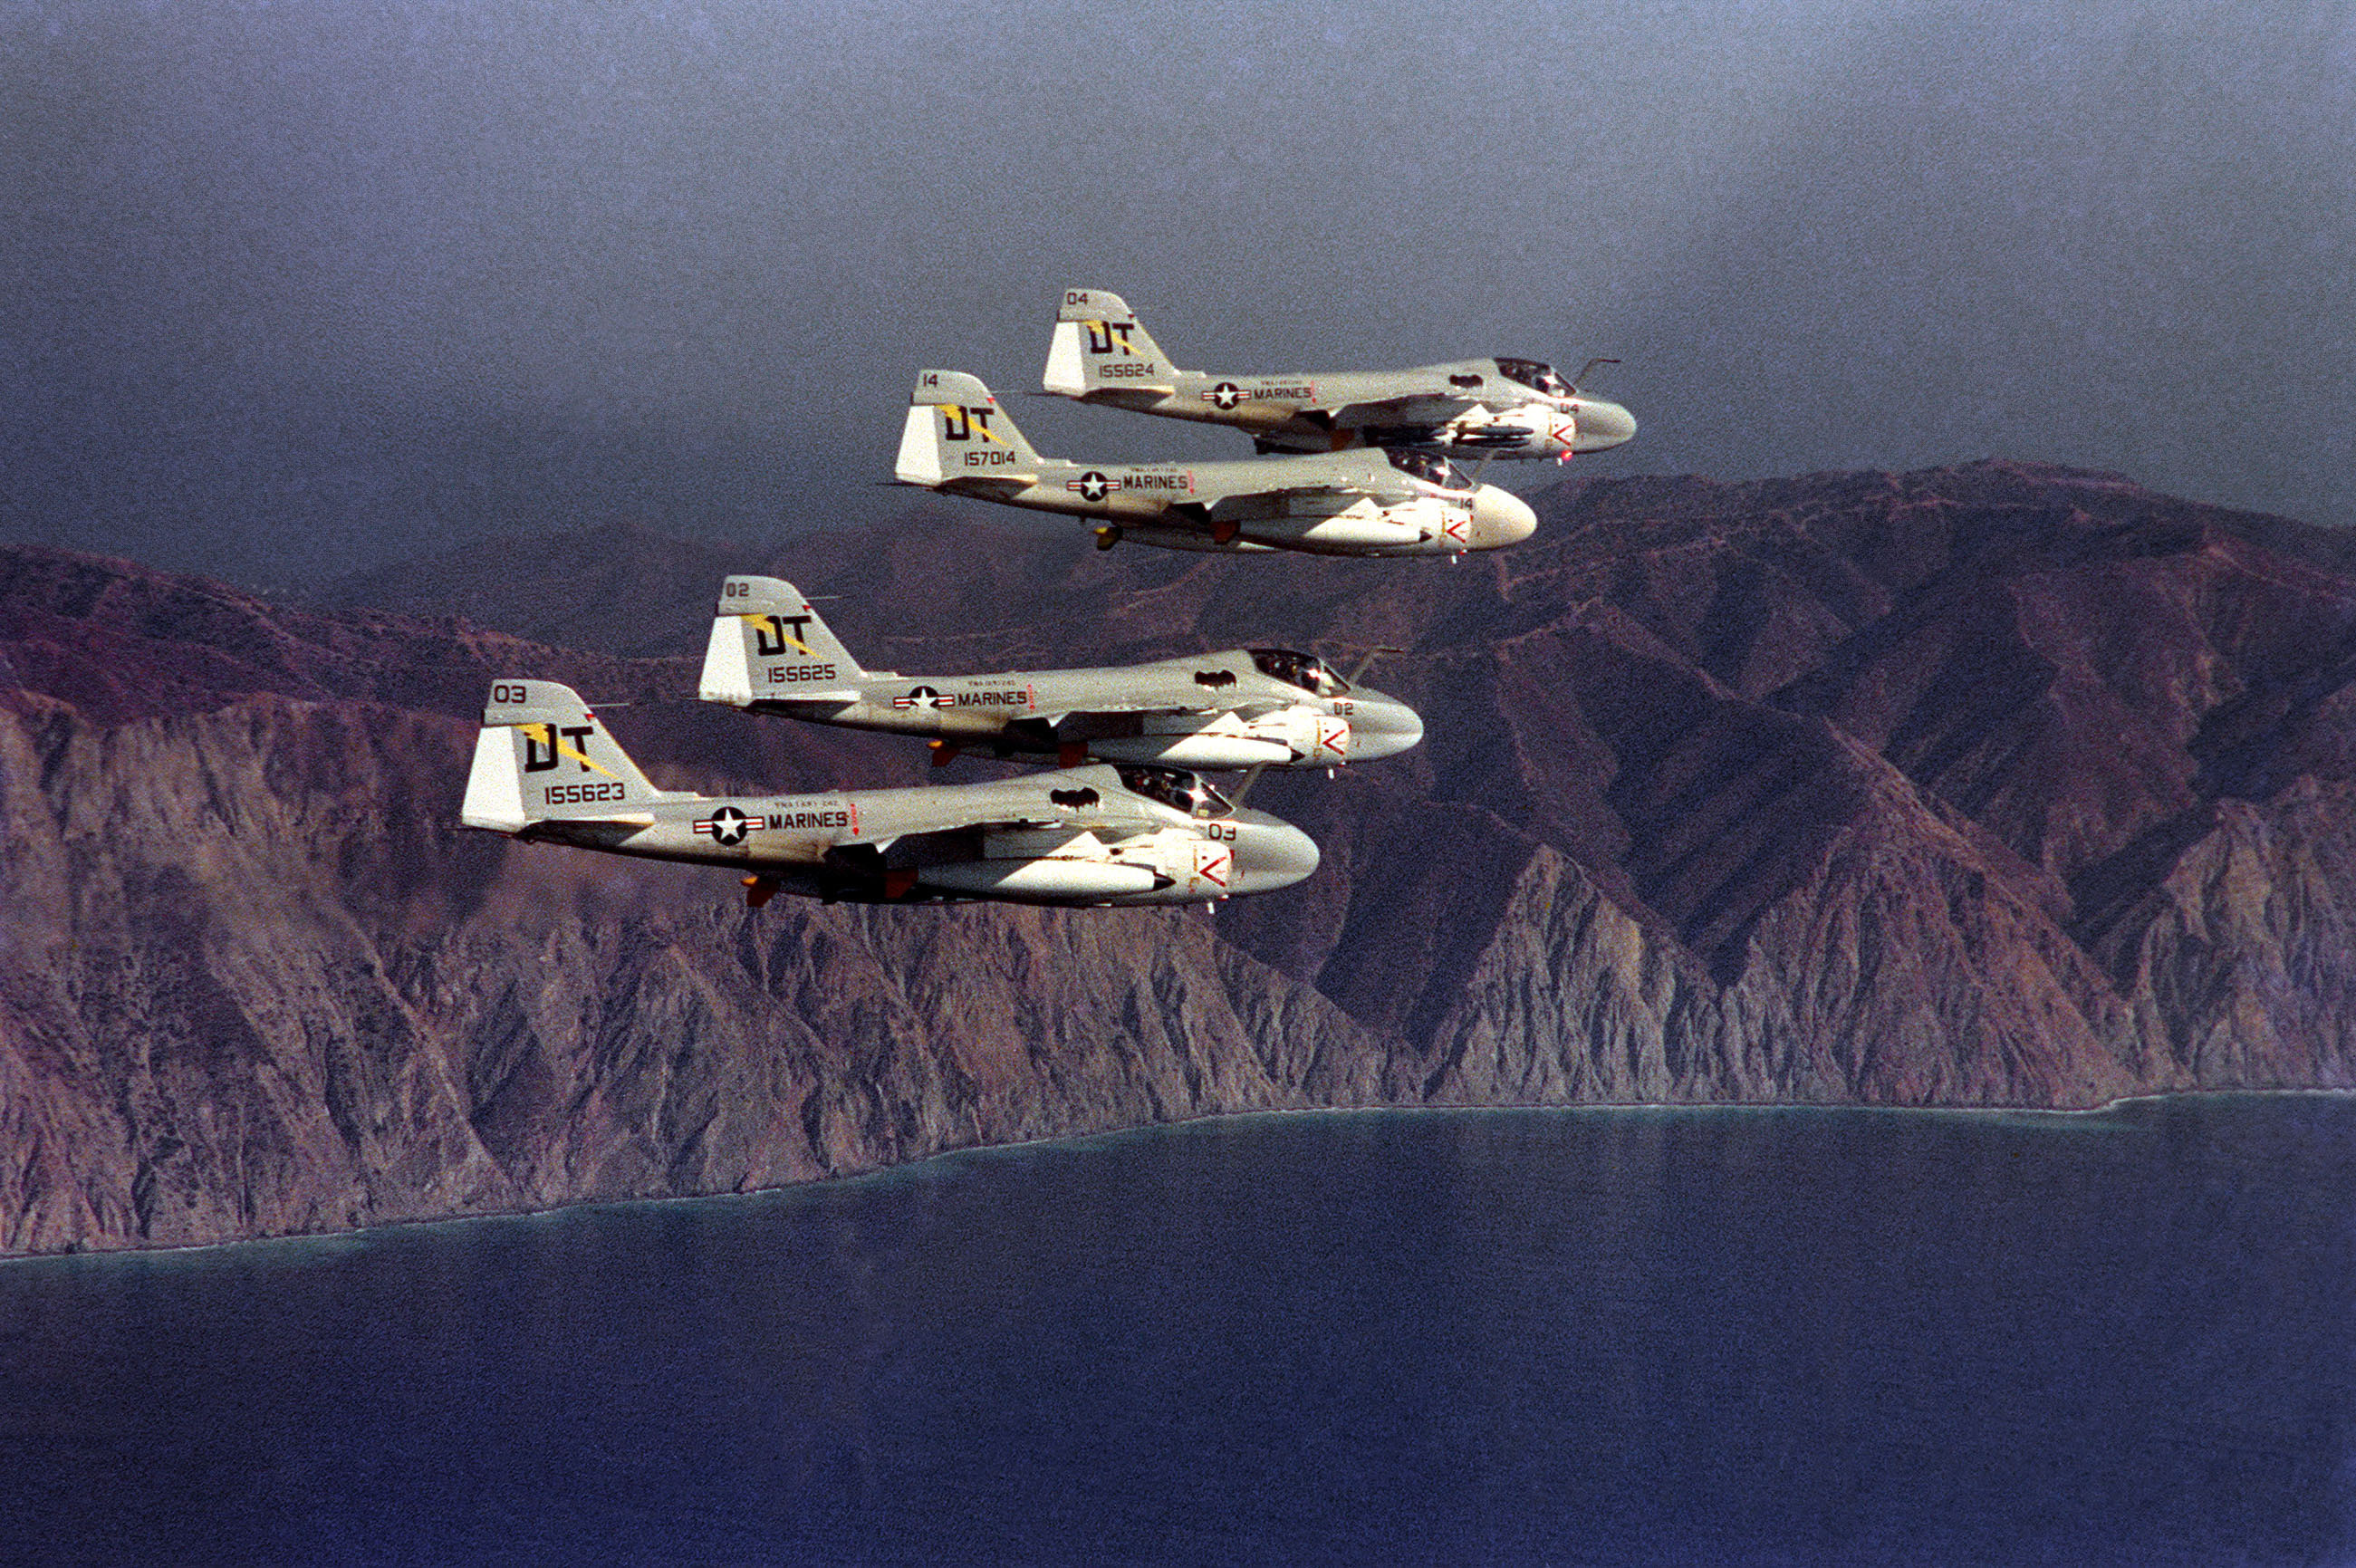 Four U.S. Marine Corps All-Weather Medium Attack Squadron 242 (VMA(AW)-242) Grumman A-6A Intruder aircraft (BuNo 155623, 155624, 155625, 157014) flying in echelon formation on 21 November 1975. (Image by Sgt. C. Quinn, USMC via Wikipedia)